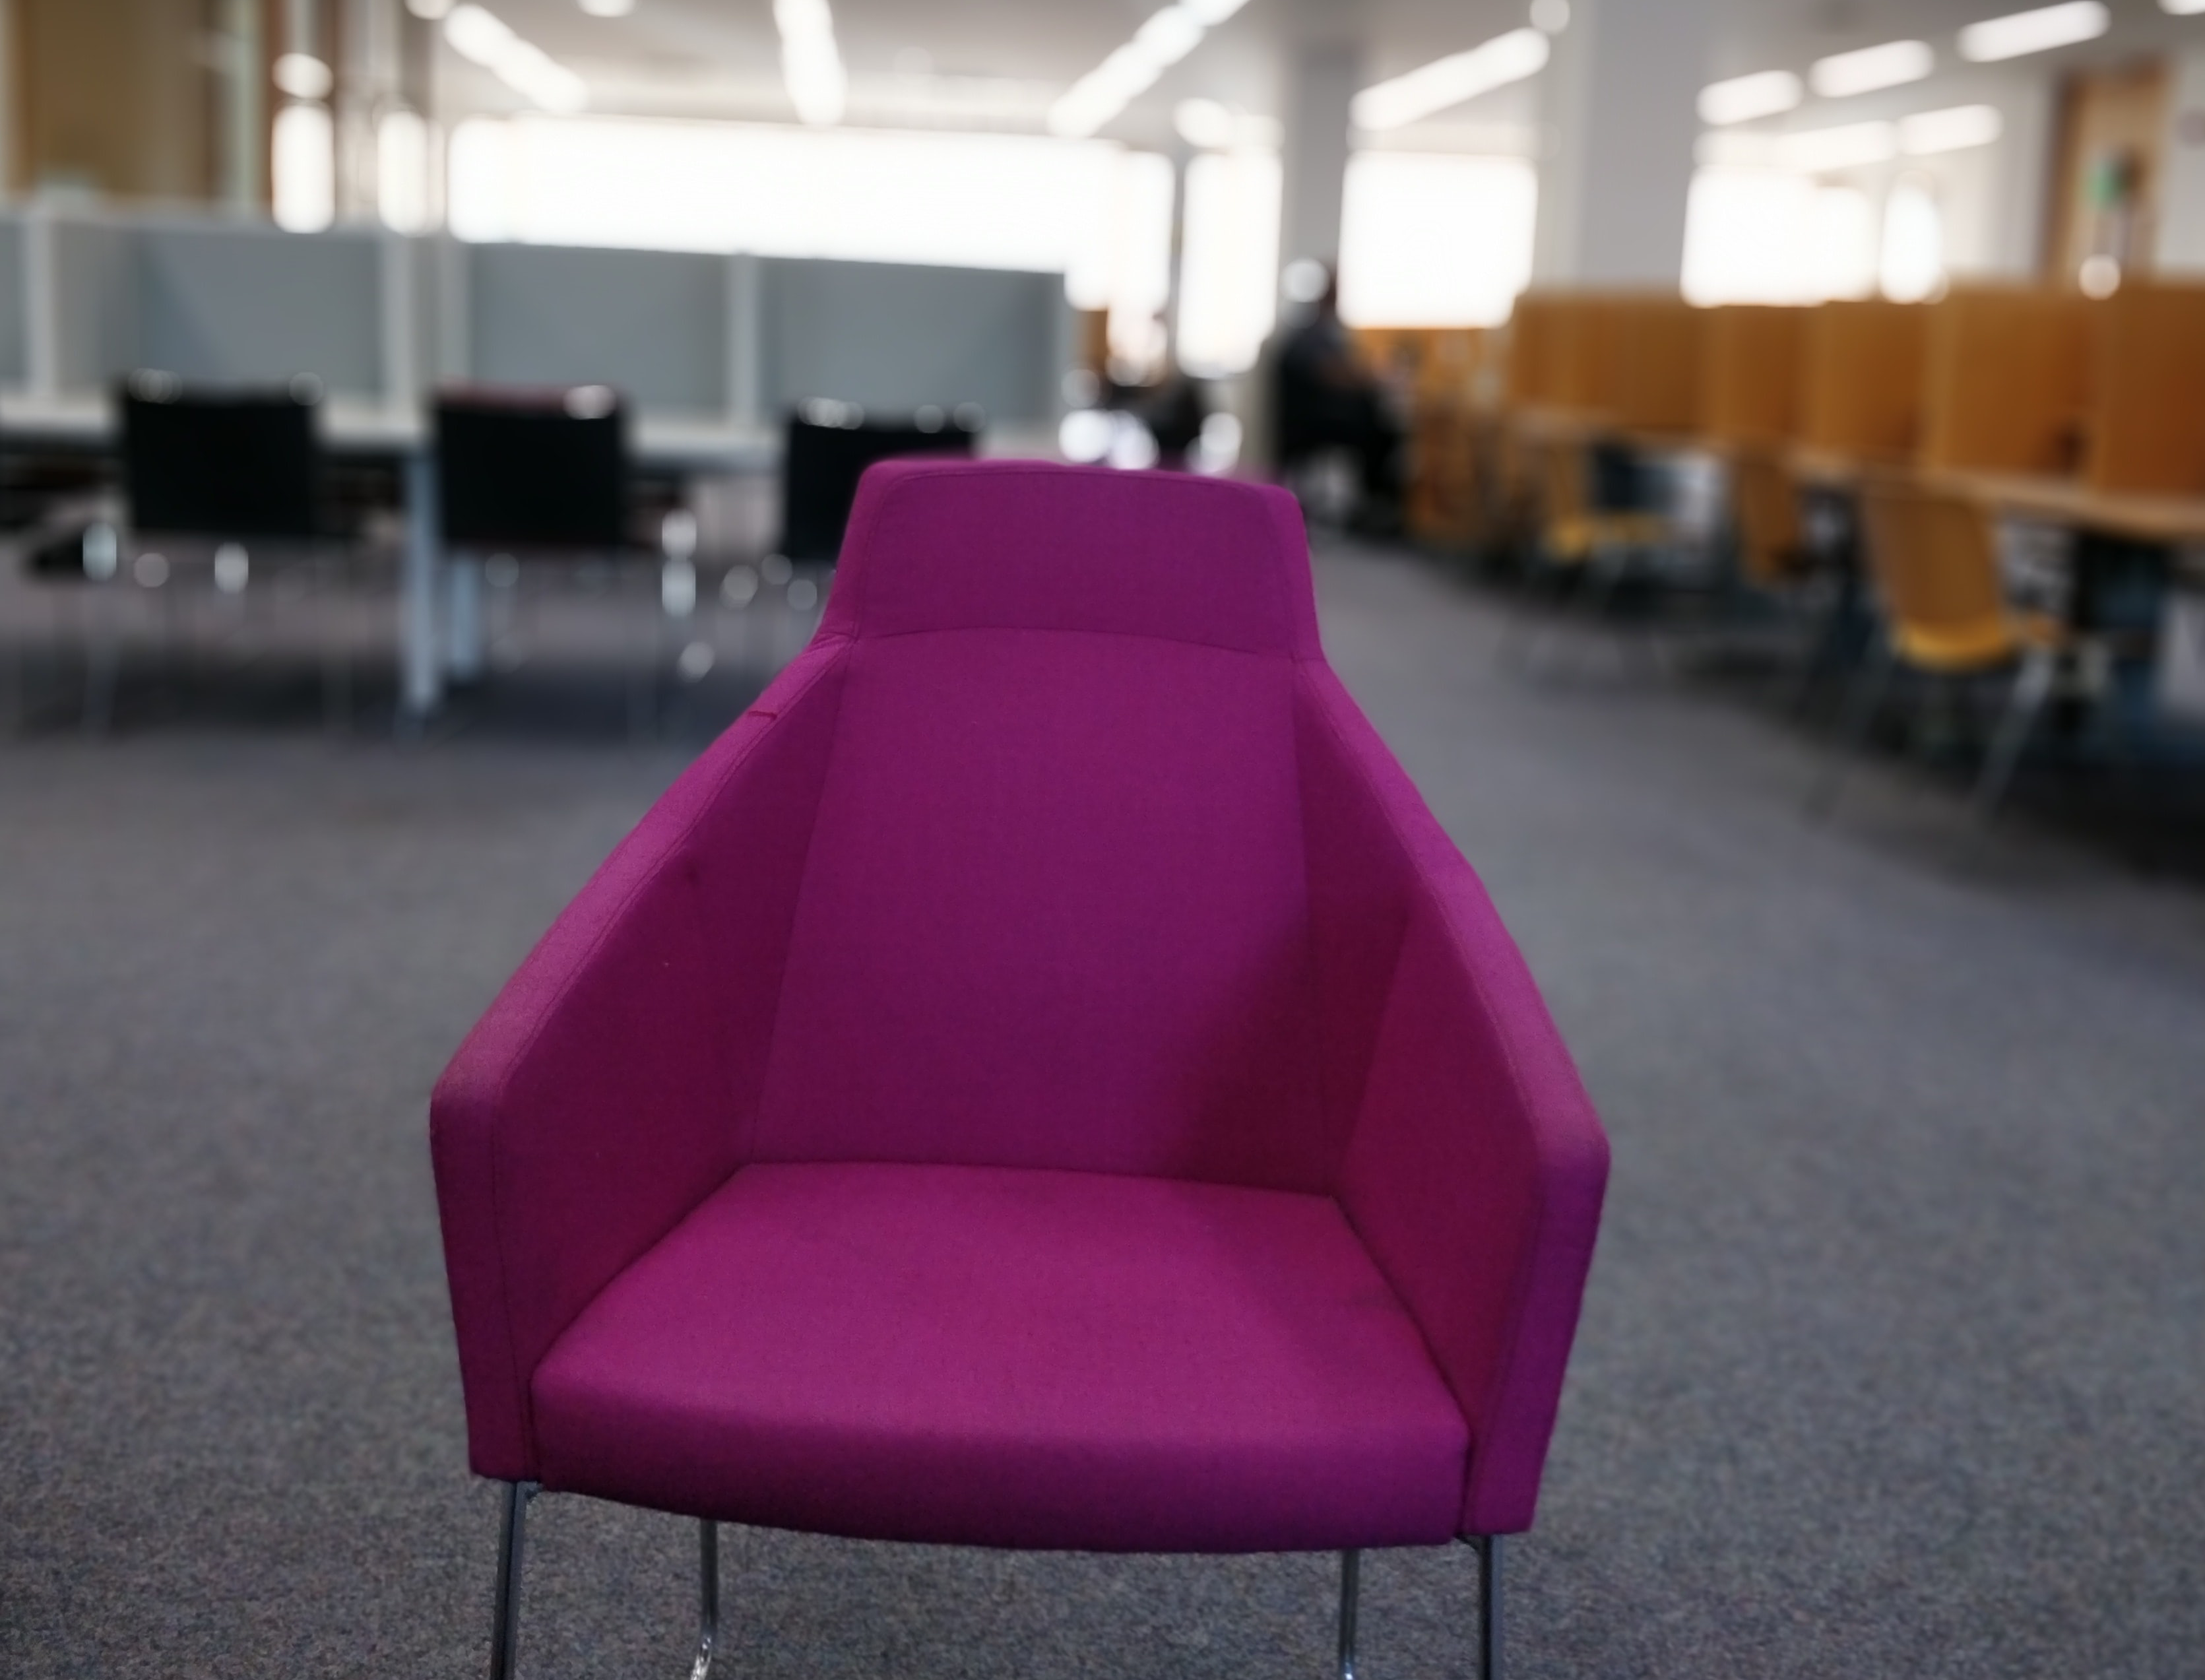 Purple Chair in DMV waiting area